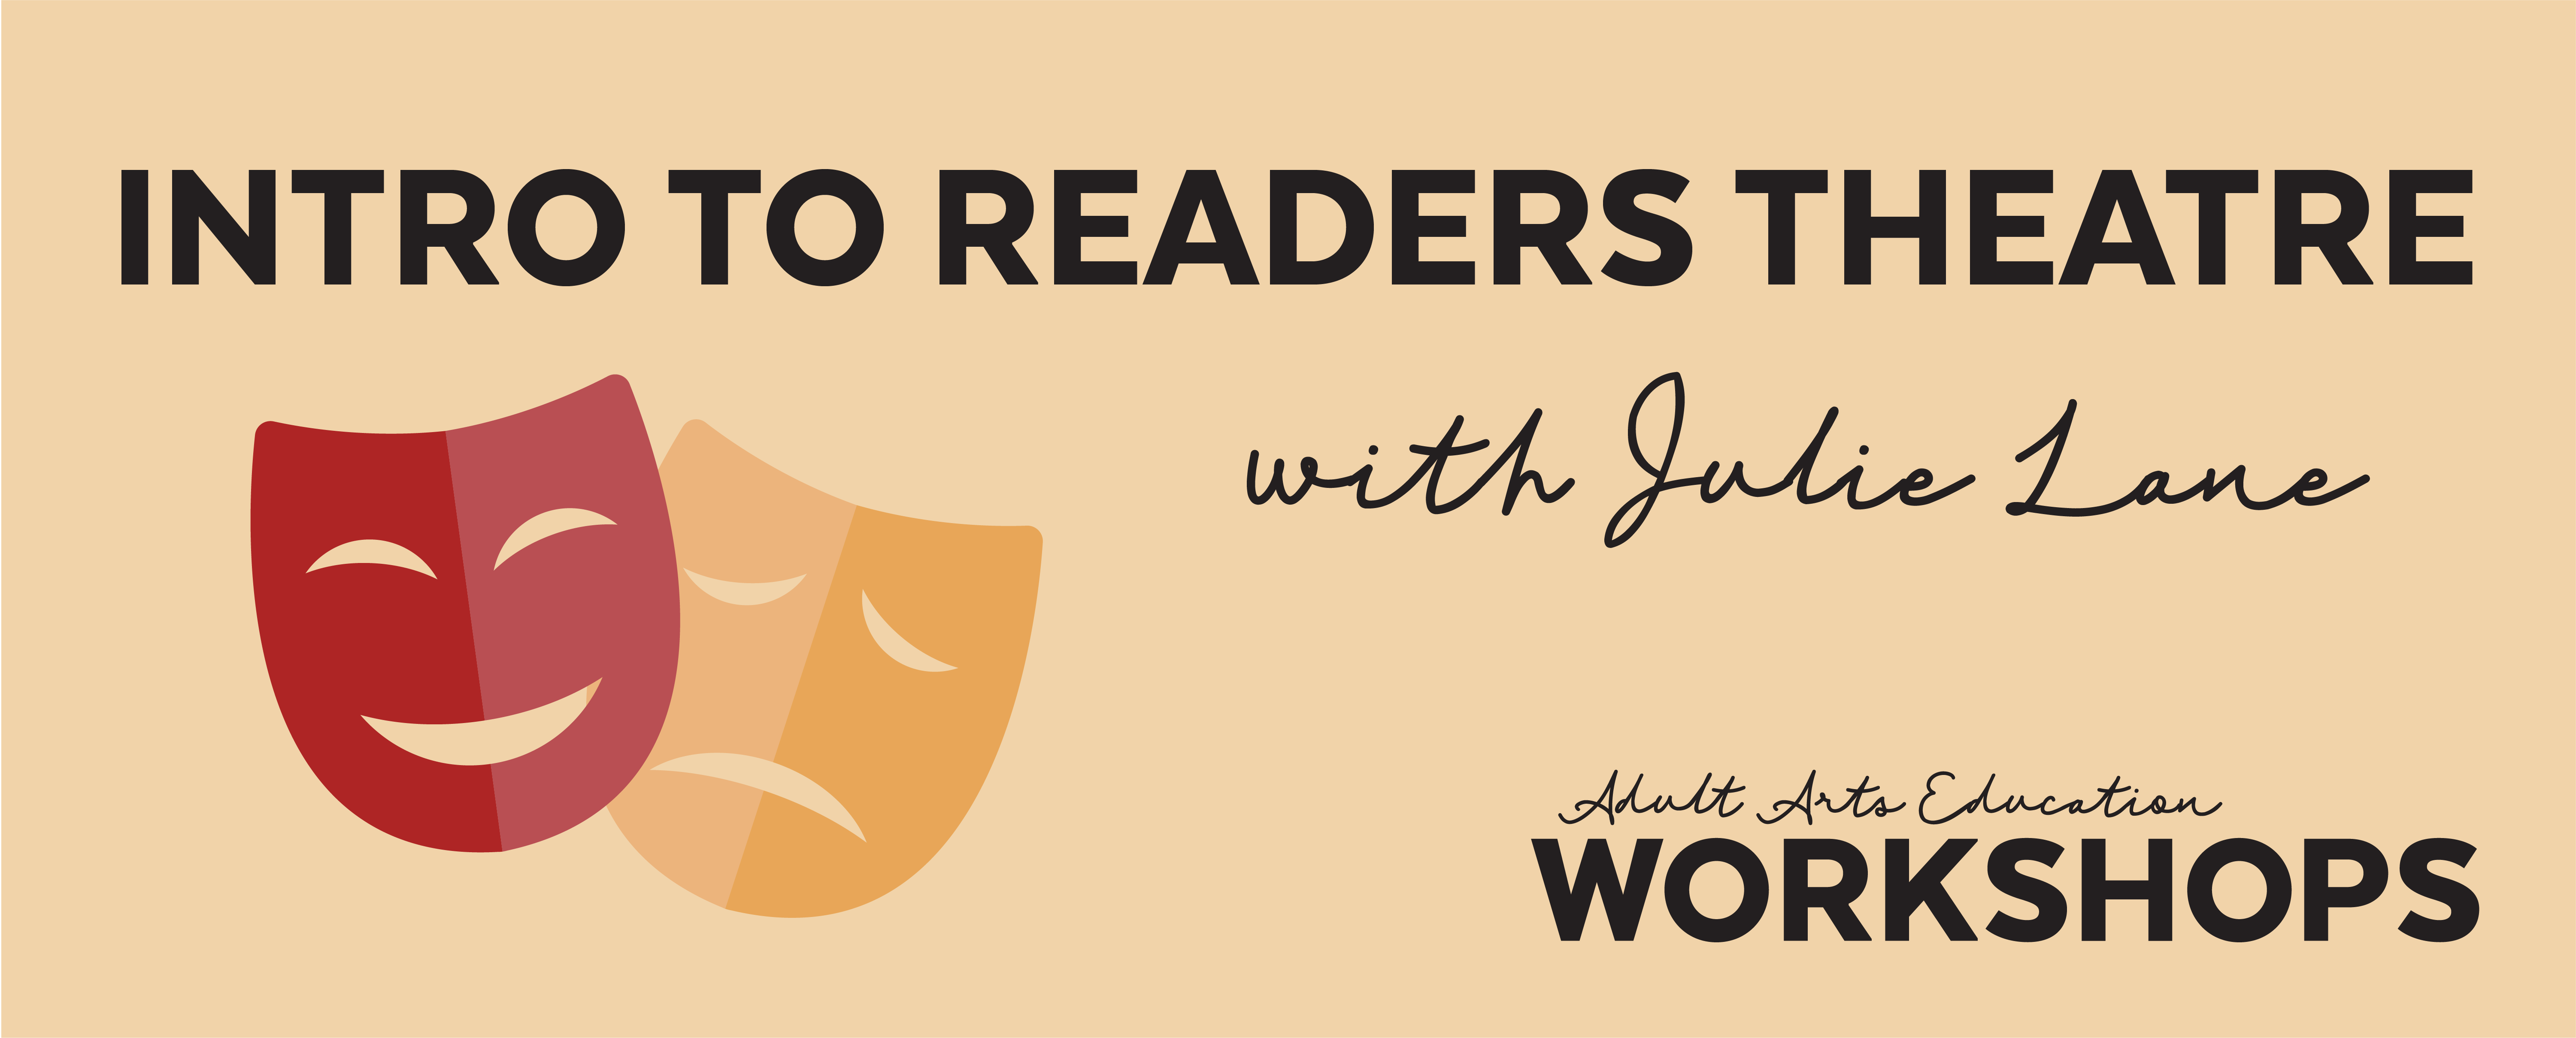 Intro to Readers Theatre with Julie Lane